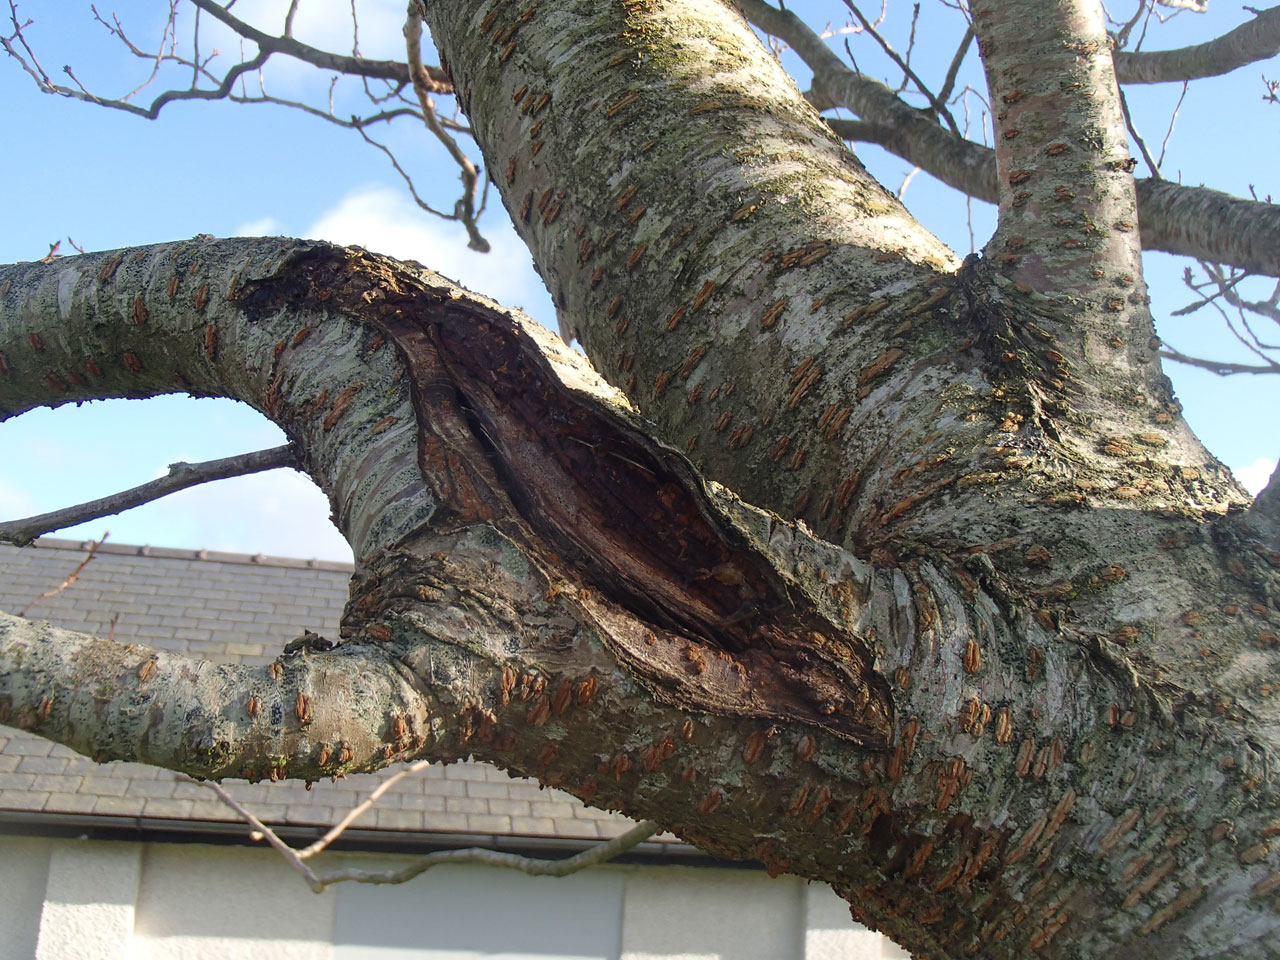 Damaged ornamental cherry tree